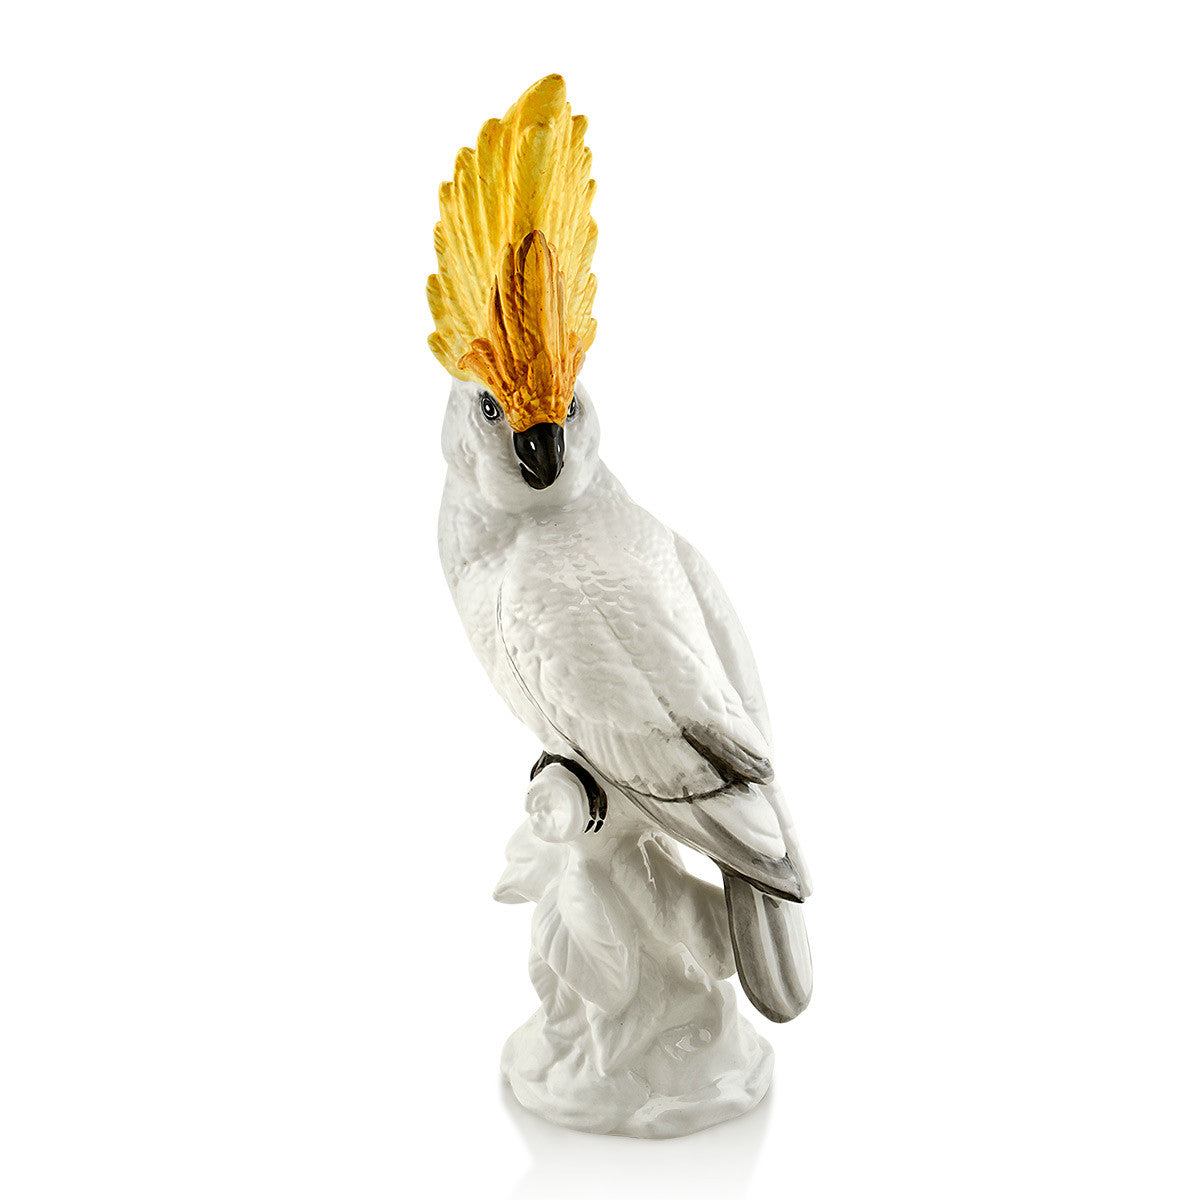 Ceramic Cockatoo figurine with gold accents